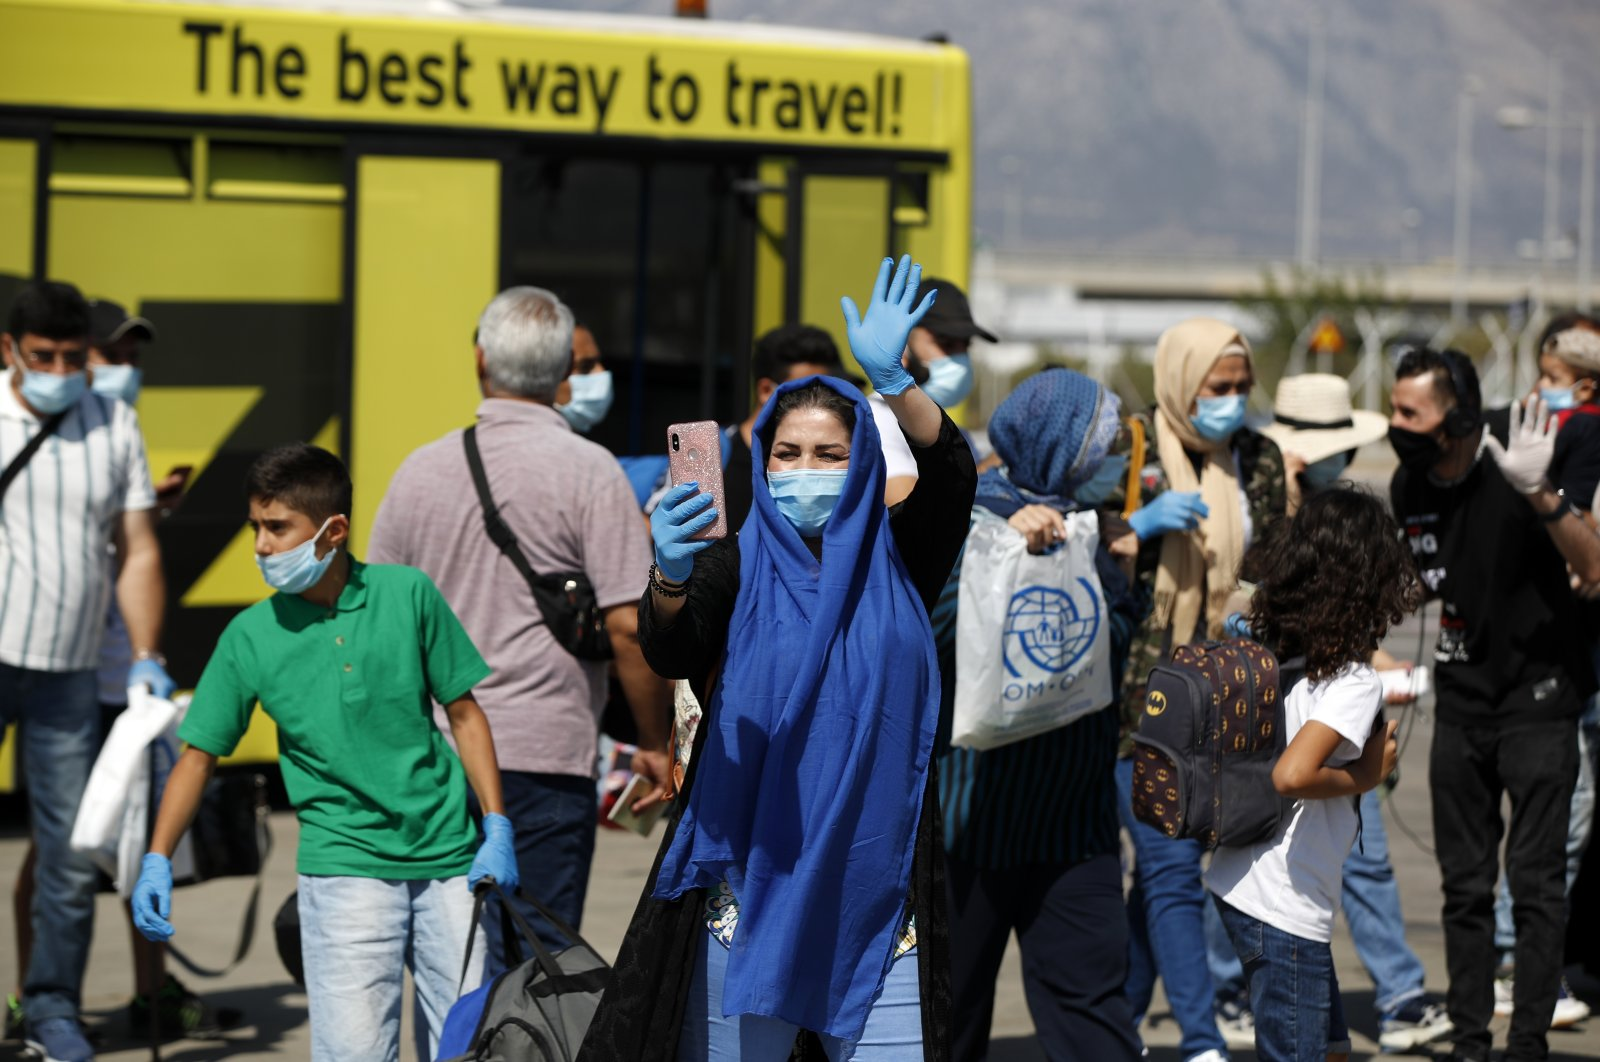 A migrant wearing a face mask to prevent the spread of coronavirus, waves before boarding an airplane bound for Iraq at the Eleftherios Venizelos International Airport in Athens, Aug. 6, 2020. (AP Photo)